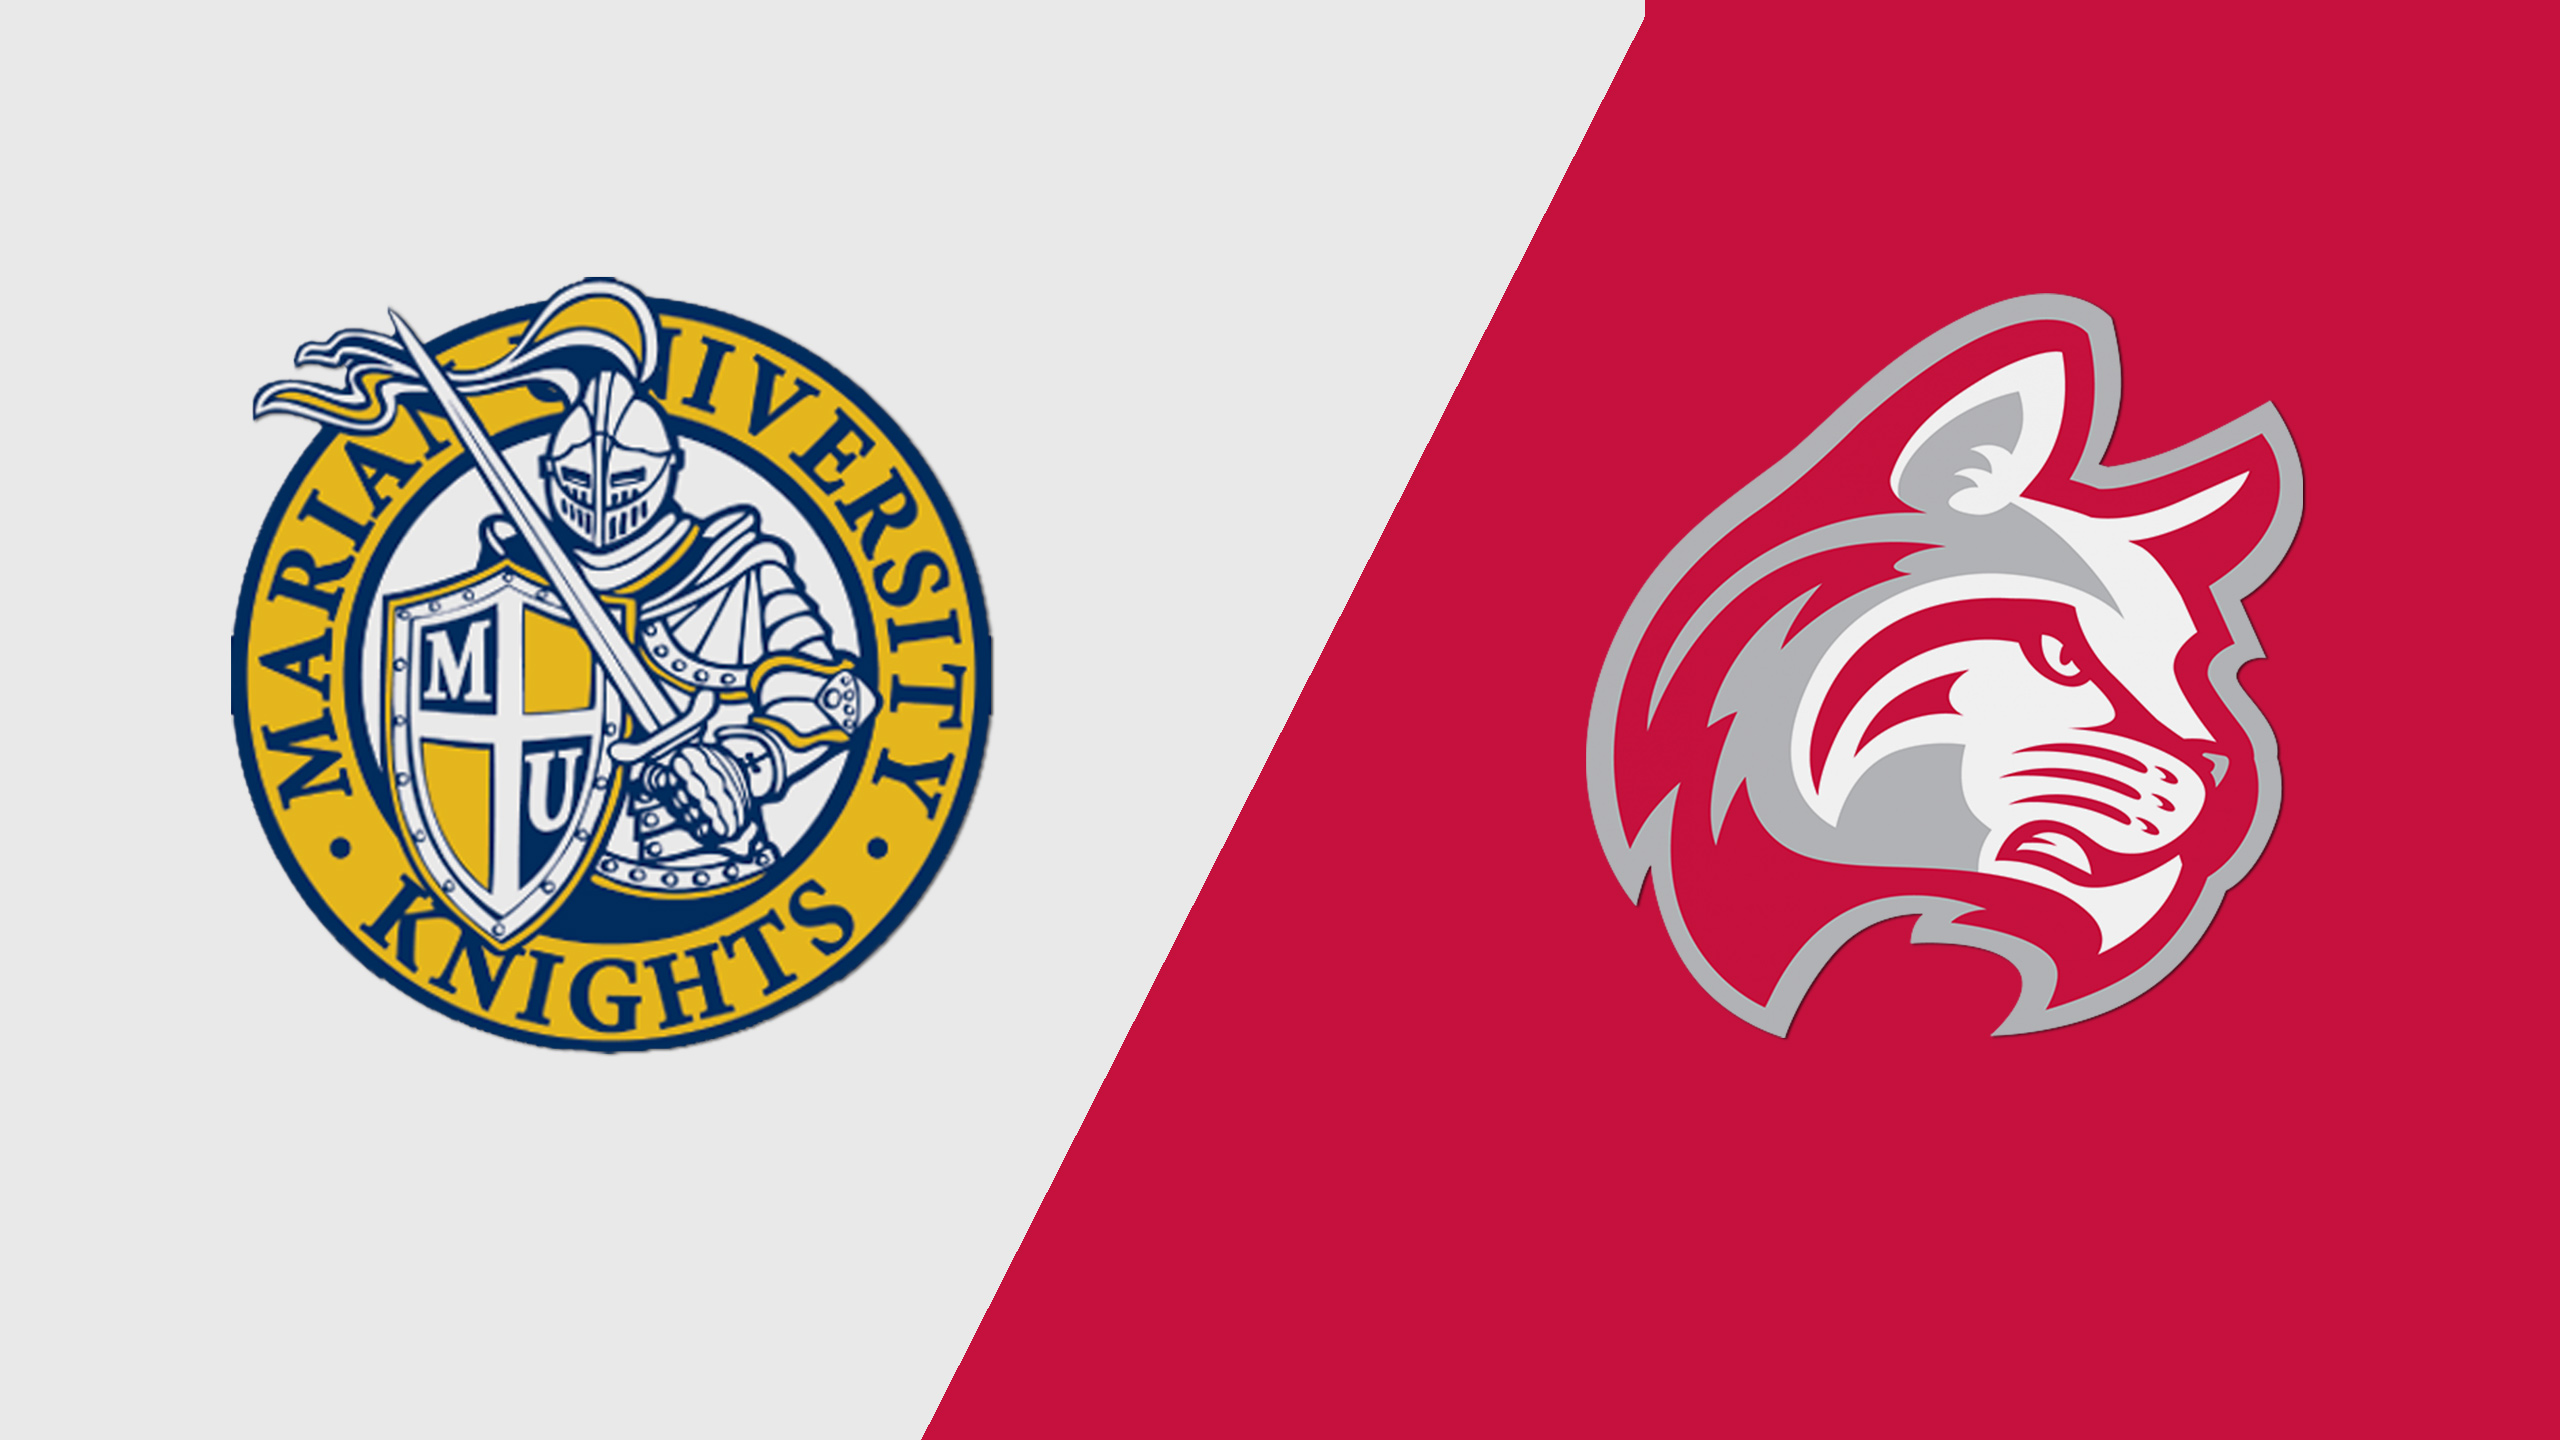 Marian (IN) vs. Indiana Wesleyan (W Basketball)